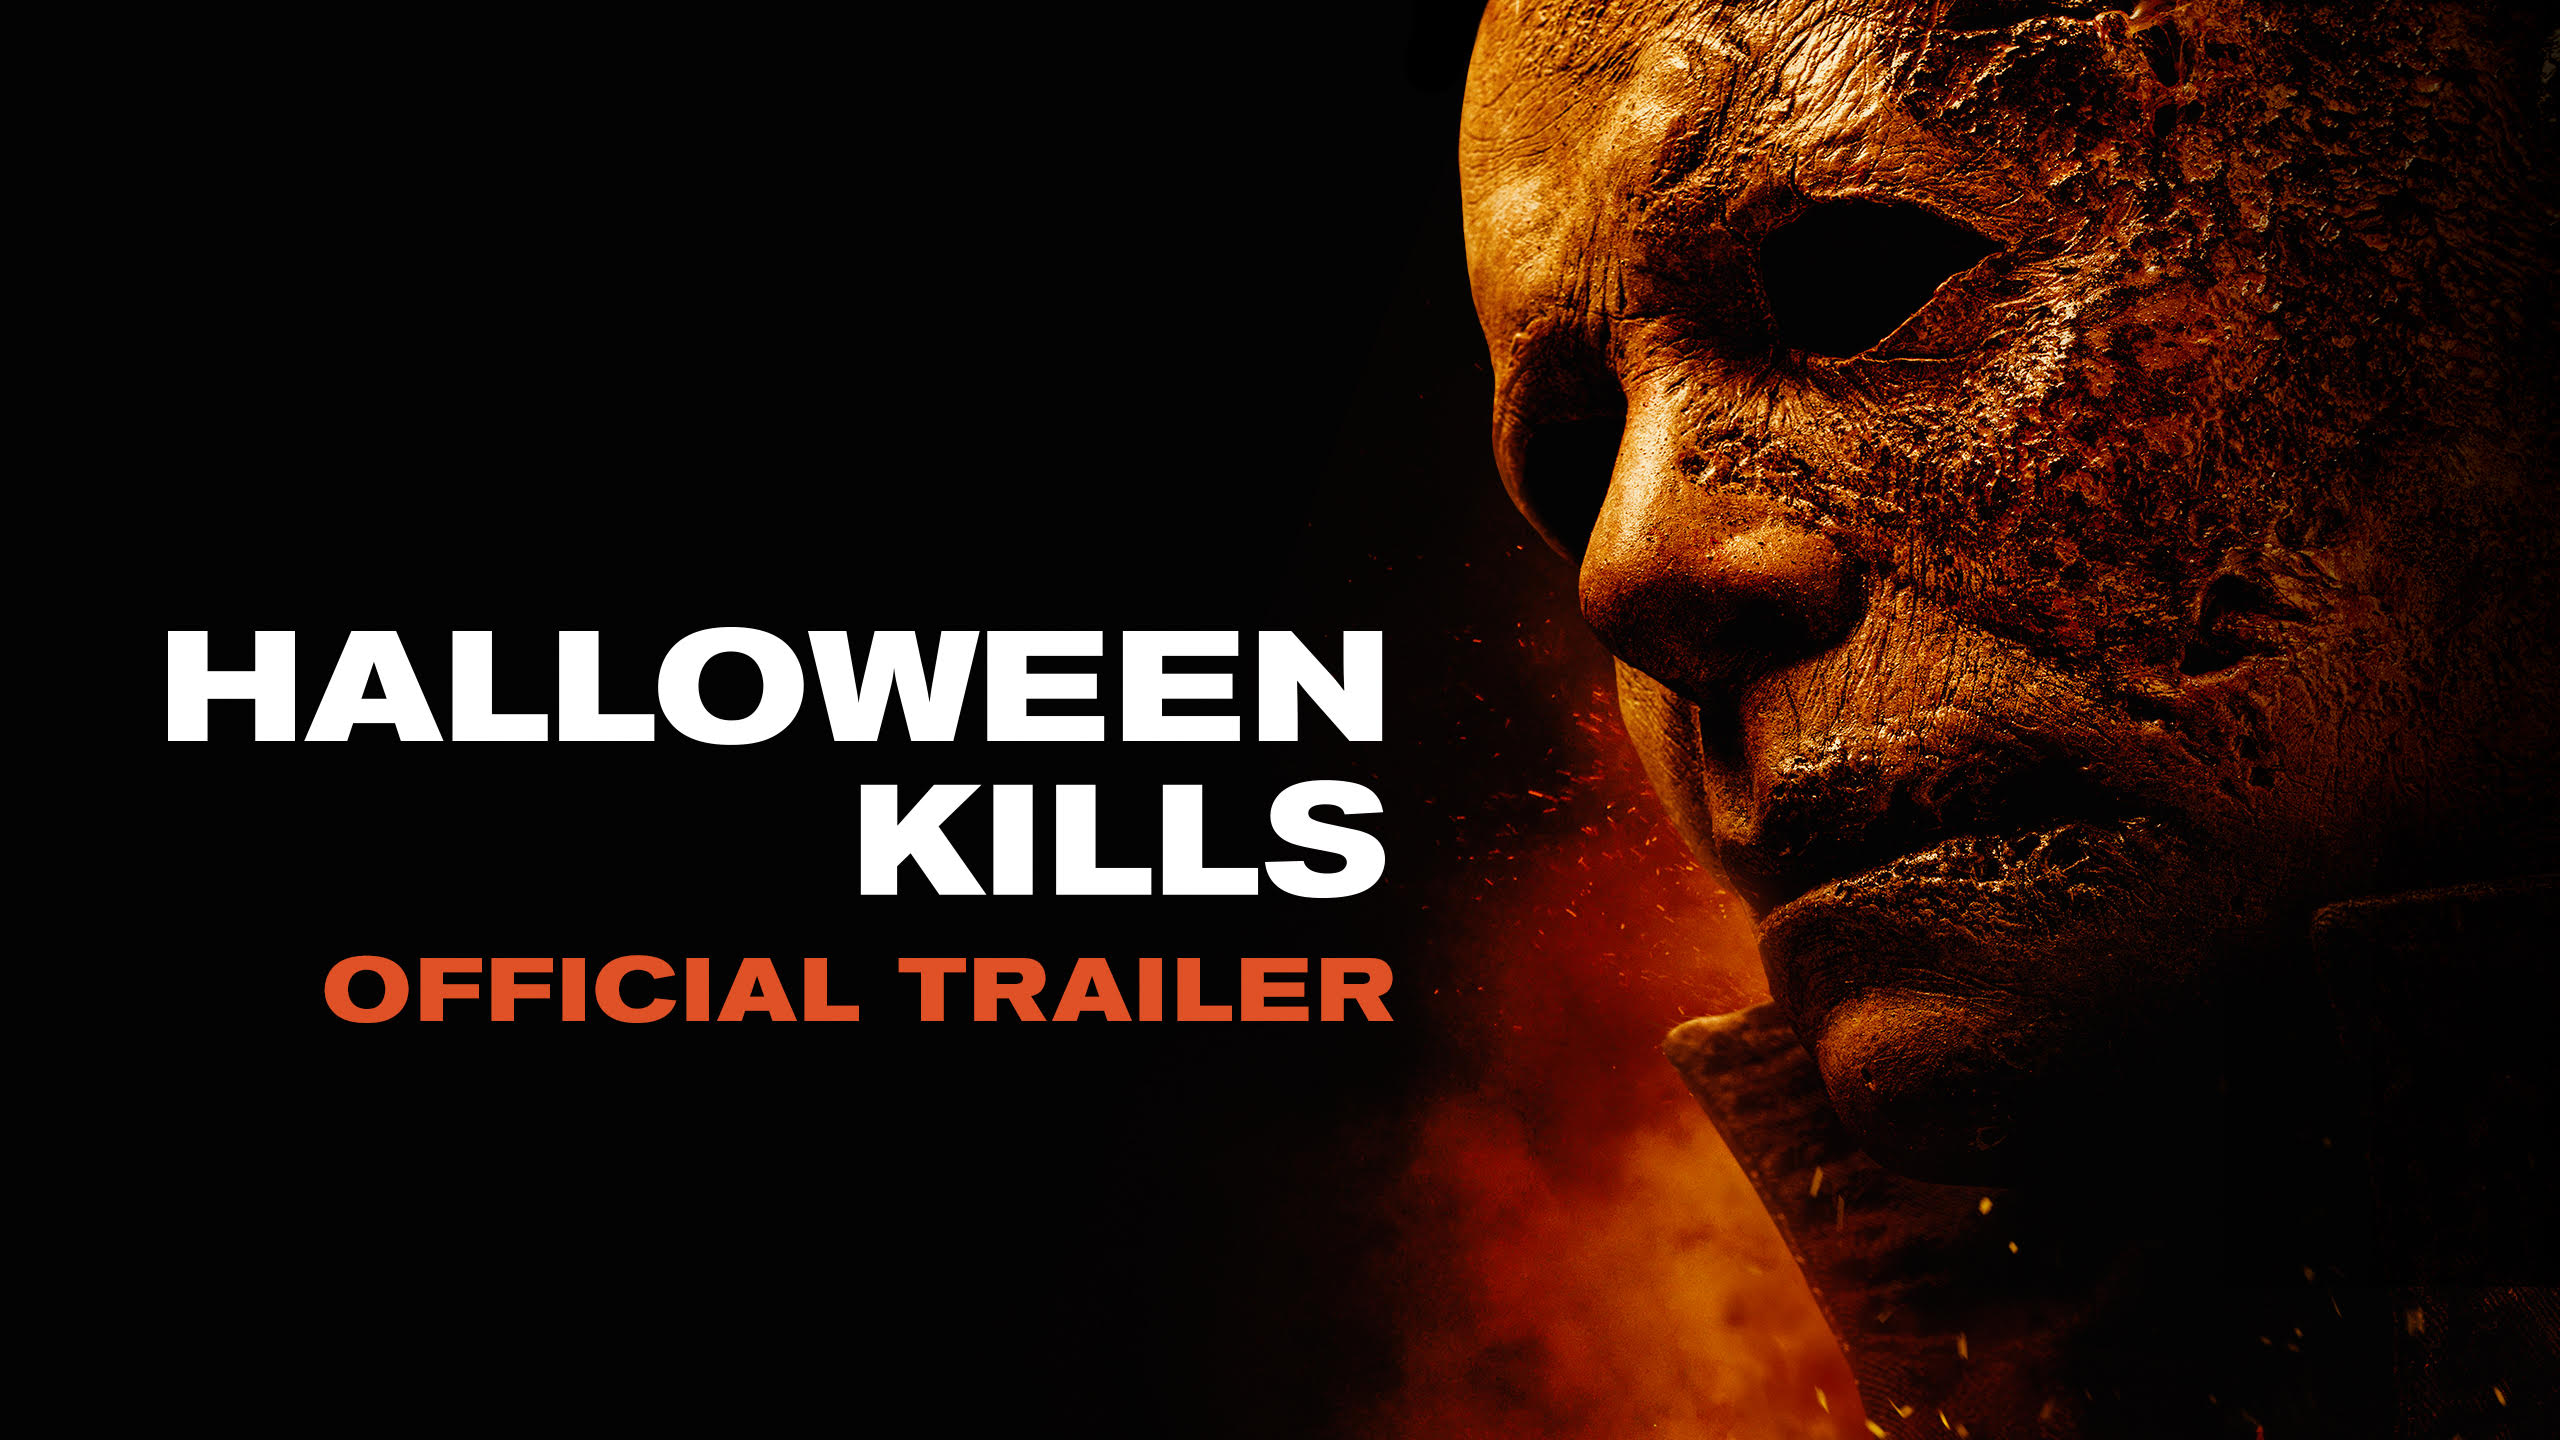 [News] The HALLOWEEN KILLS Trailer Just Dropped!